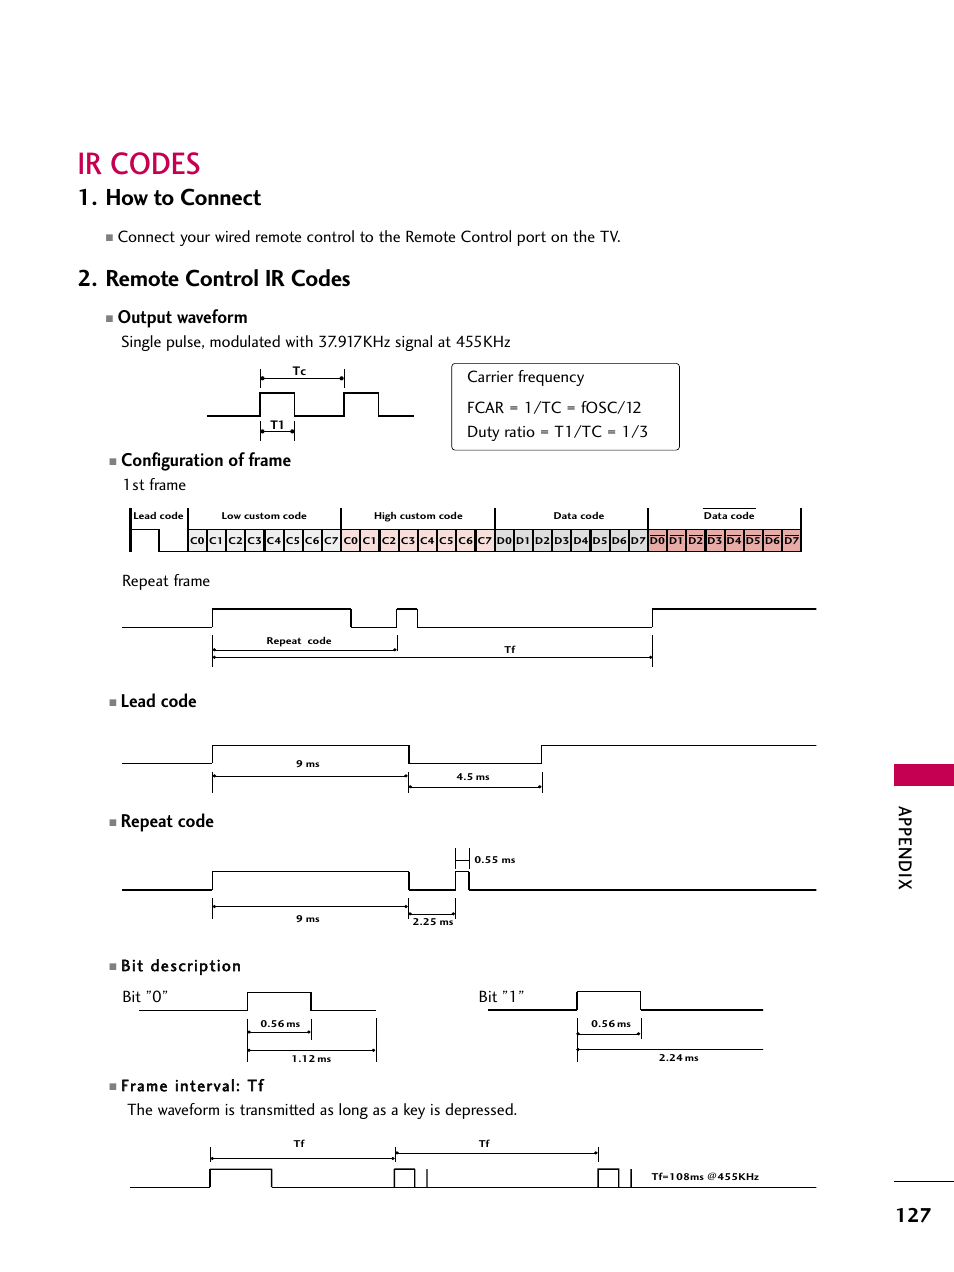 Ir codes, How to connect, Remote control ir codes | LG